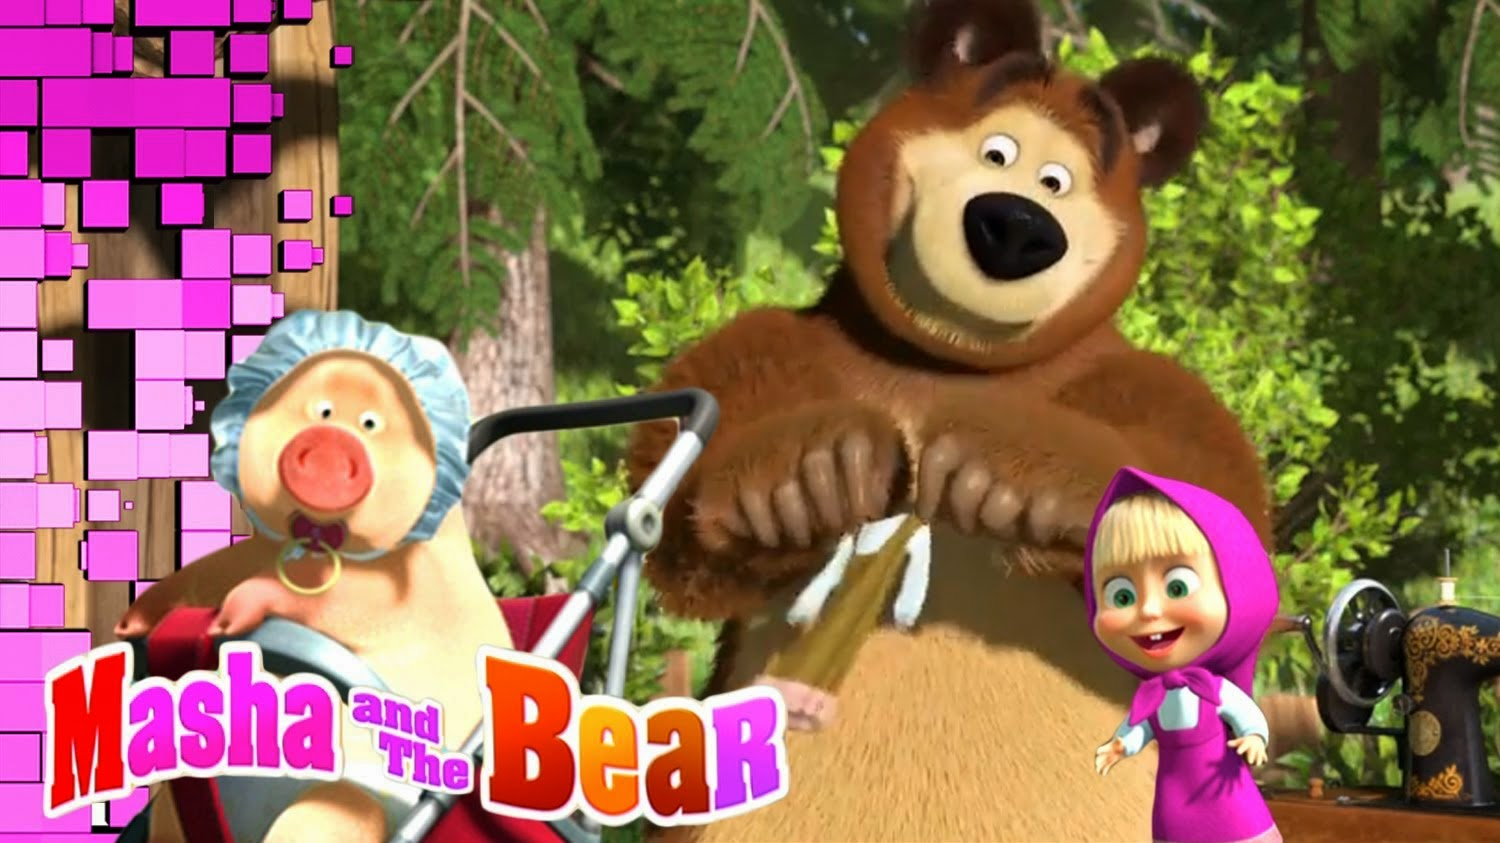 Gambar Marsha and the Bear Lucu 3D Terbaru